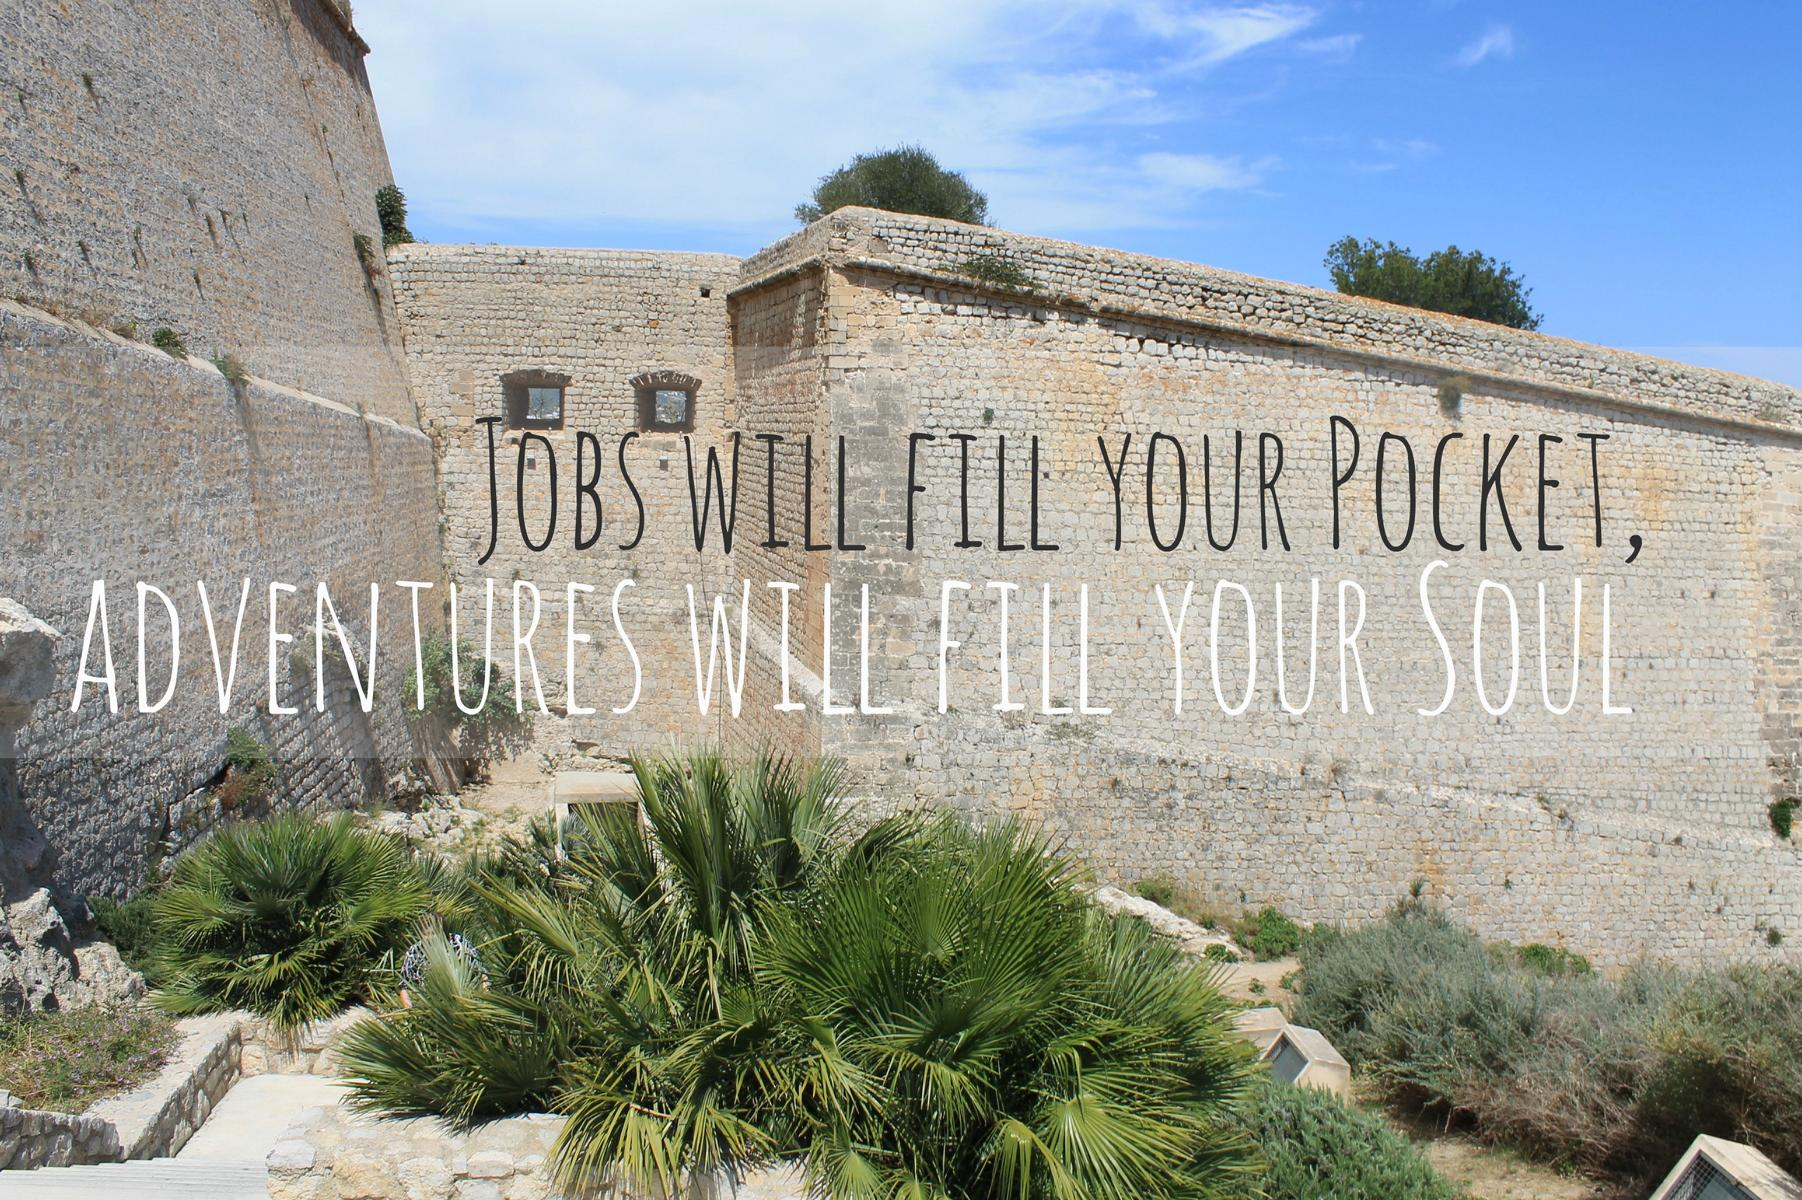 reisezitate jobs will fill your pocket adventures will fill your soul